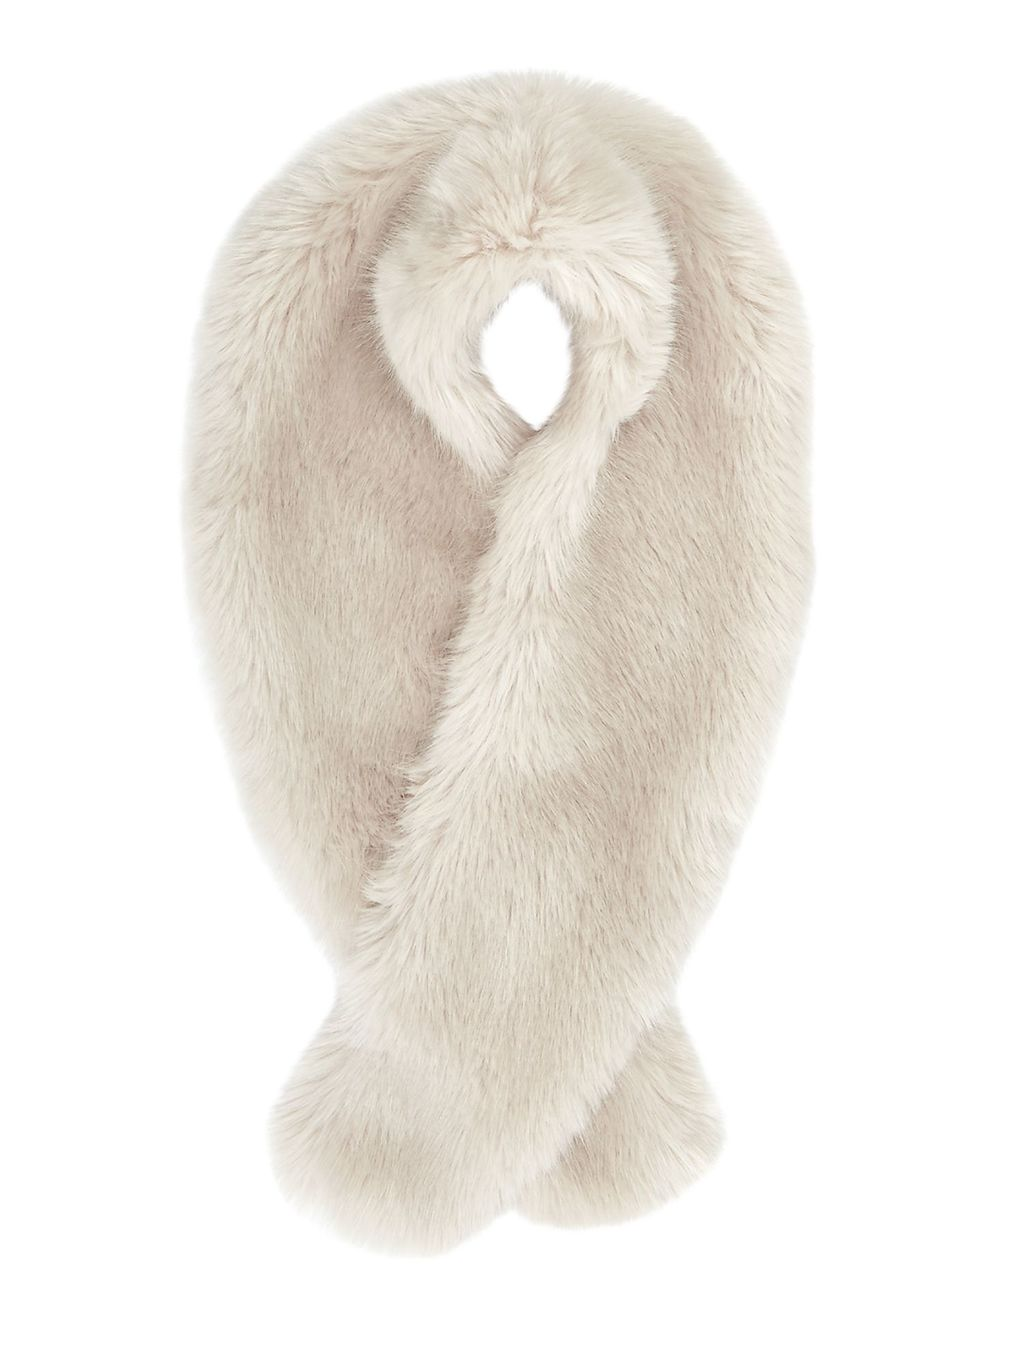 Serene Faux Fur Scarf, Off White - predominant colour: ivory/cream; occasions: casual, creative work; type of pattern: standard; size: standard; material: faux fur; pattern: plain; style: stole; wardrobe: basic; season: a/w 2016